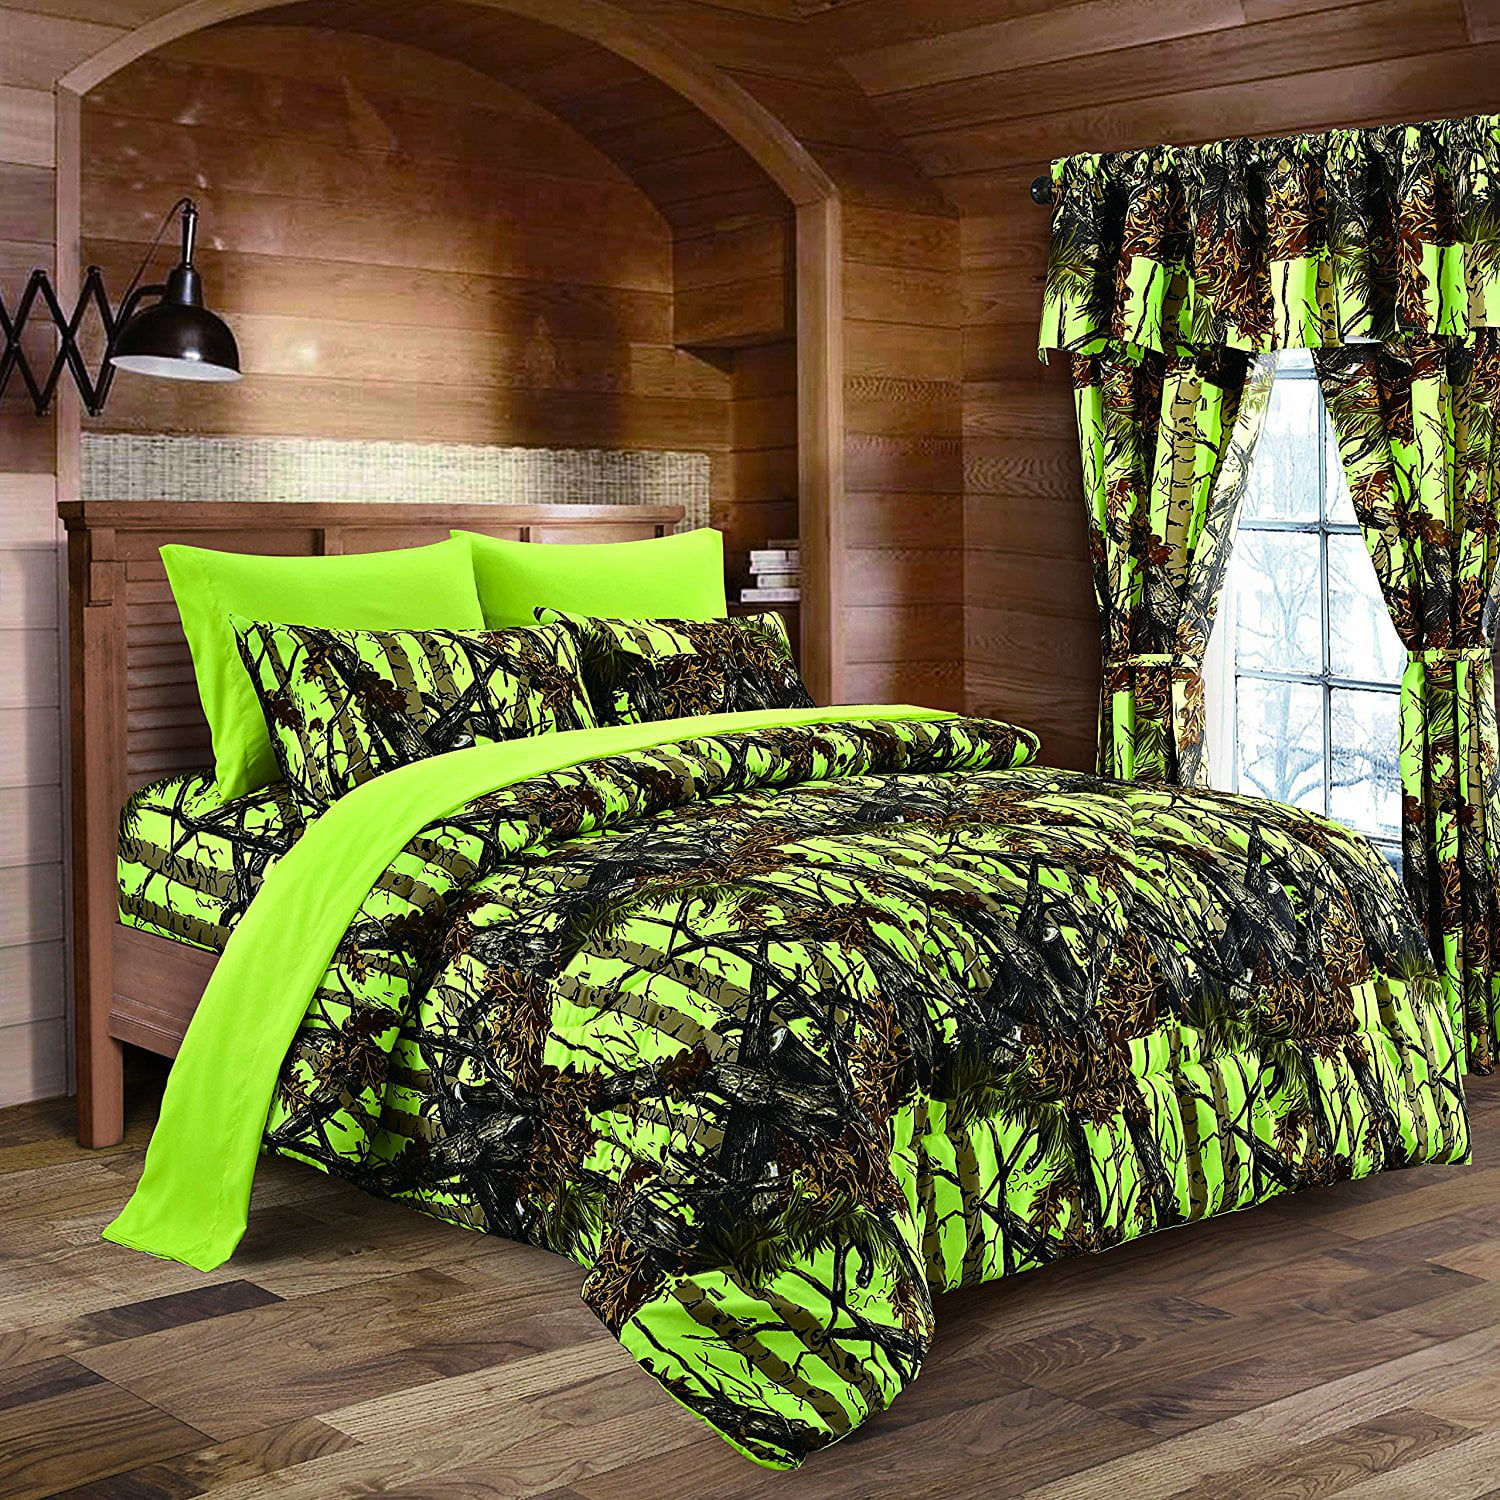 Regal Comfort 5pc Twin Size Woods Lime Green Camouflage Premium Comforter, SHeet, Pillowcases, and Bedskirt... by Regal Comfort